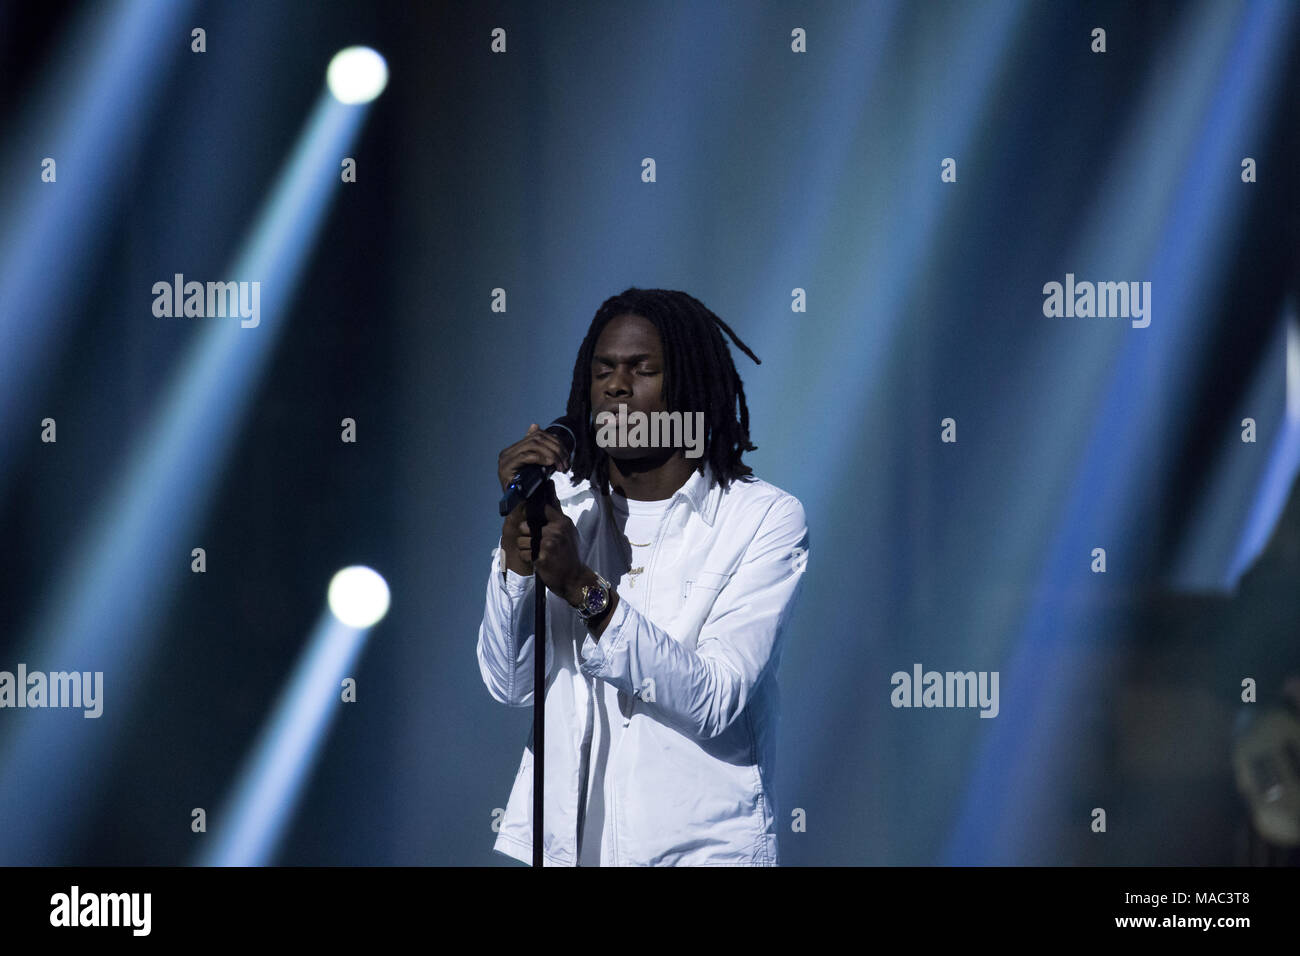 Vancouver, CANADA. 26th March, 2018. Daniel Caeser performs at the 2018 Juno Awards in Vancouver. Credit: Bobby Singh/fohphoto - Stock Image